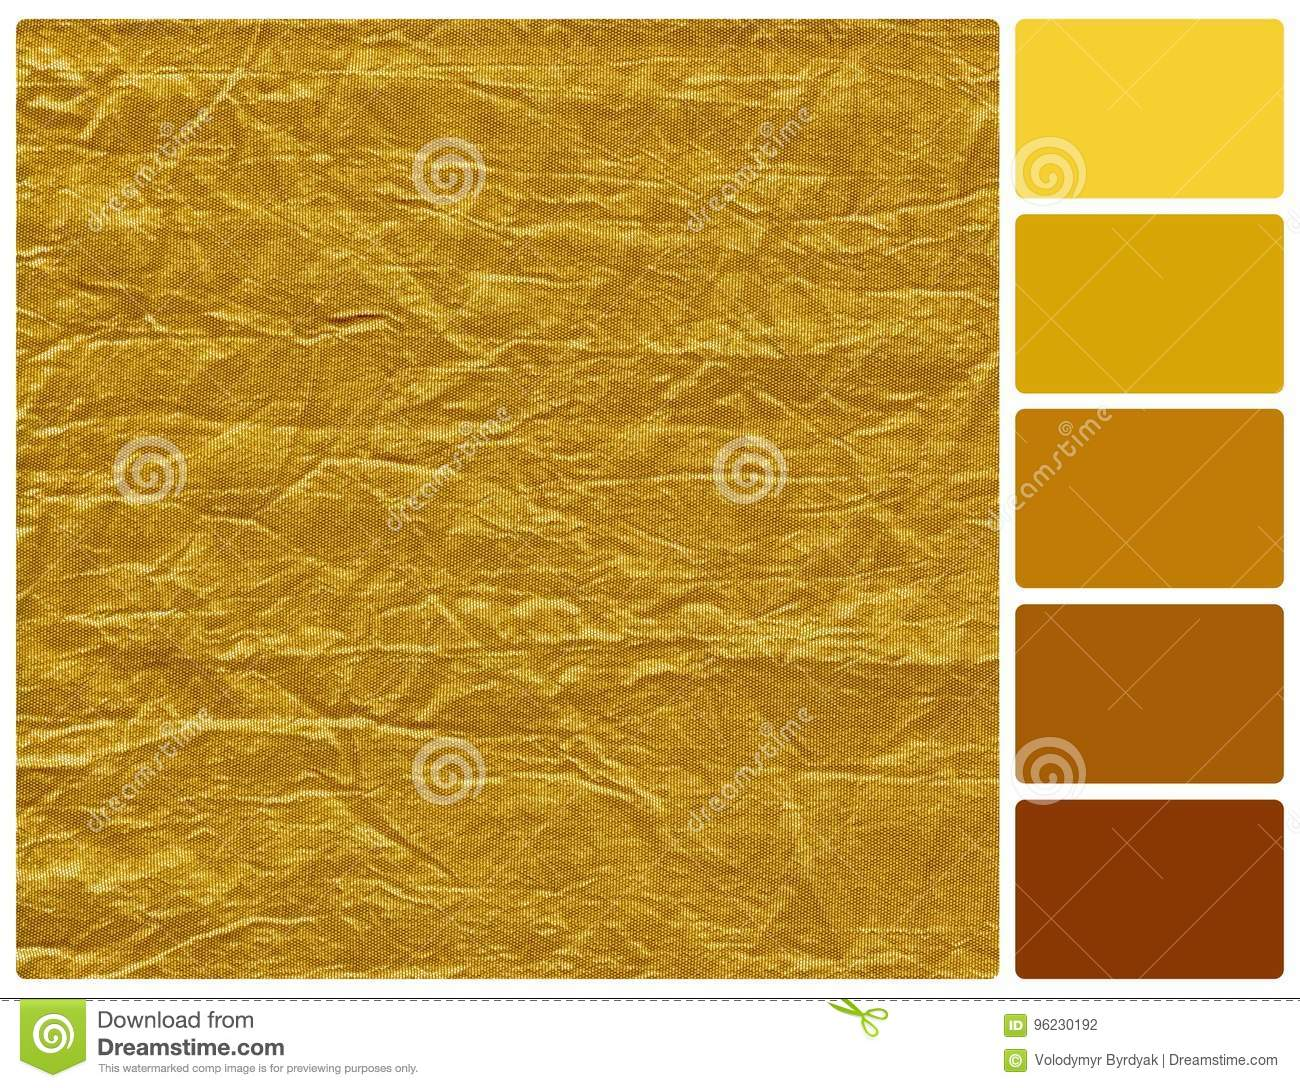 Golden Texture With Palette Color Swatches Stock Photo - Image of ...